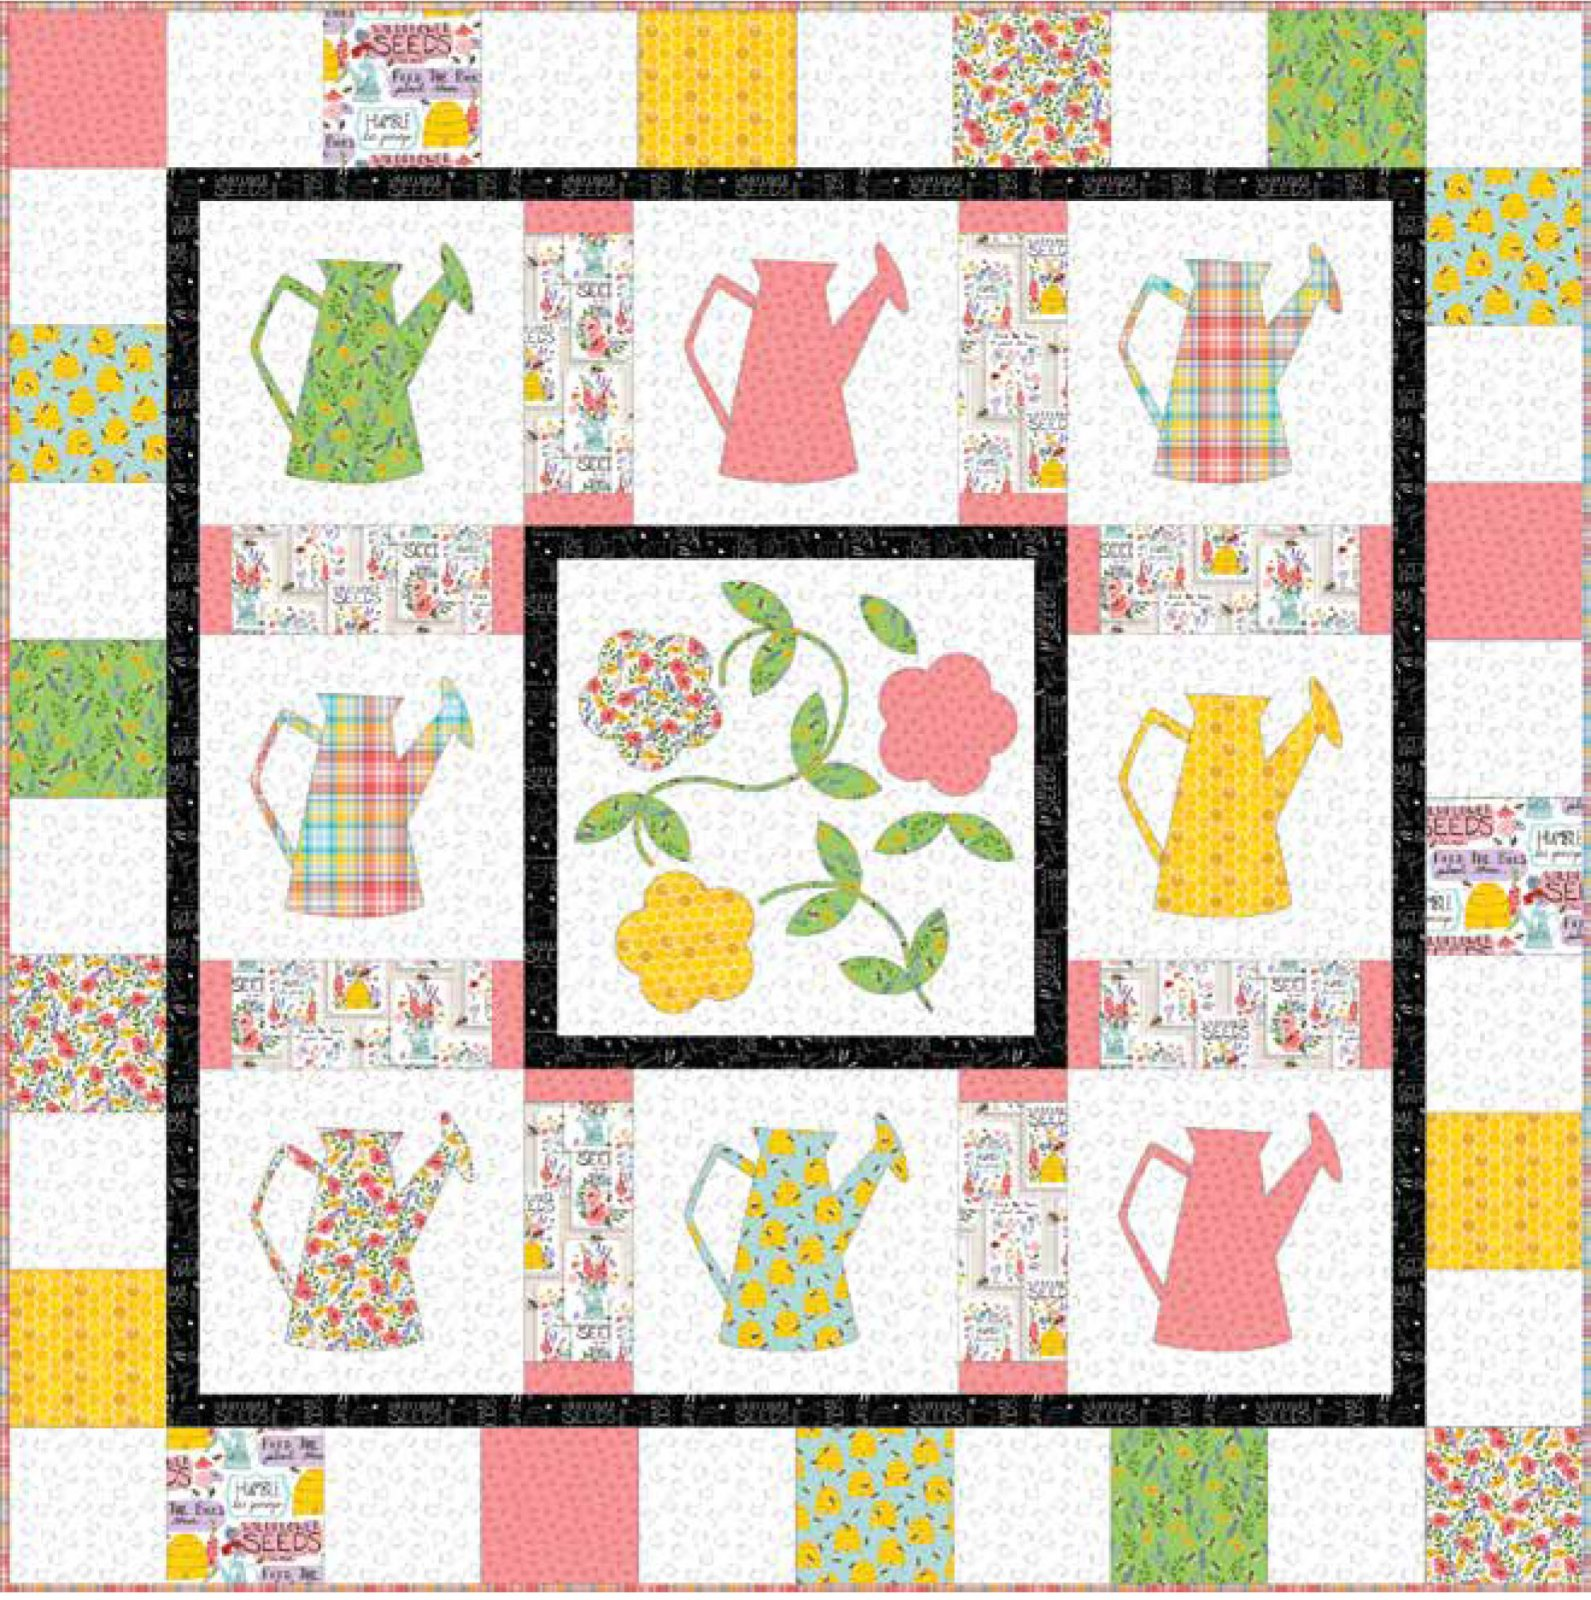 3 Wishes Fabric<br>Feed the Bees Quilt